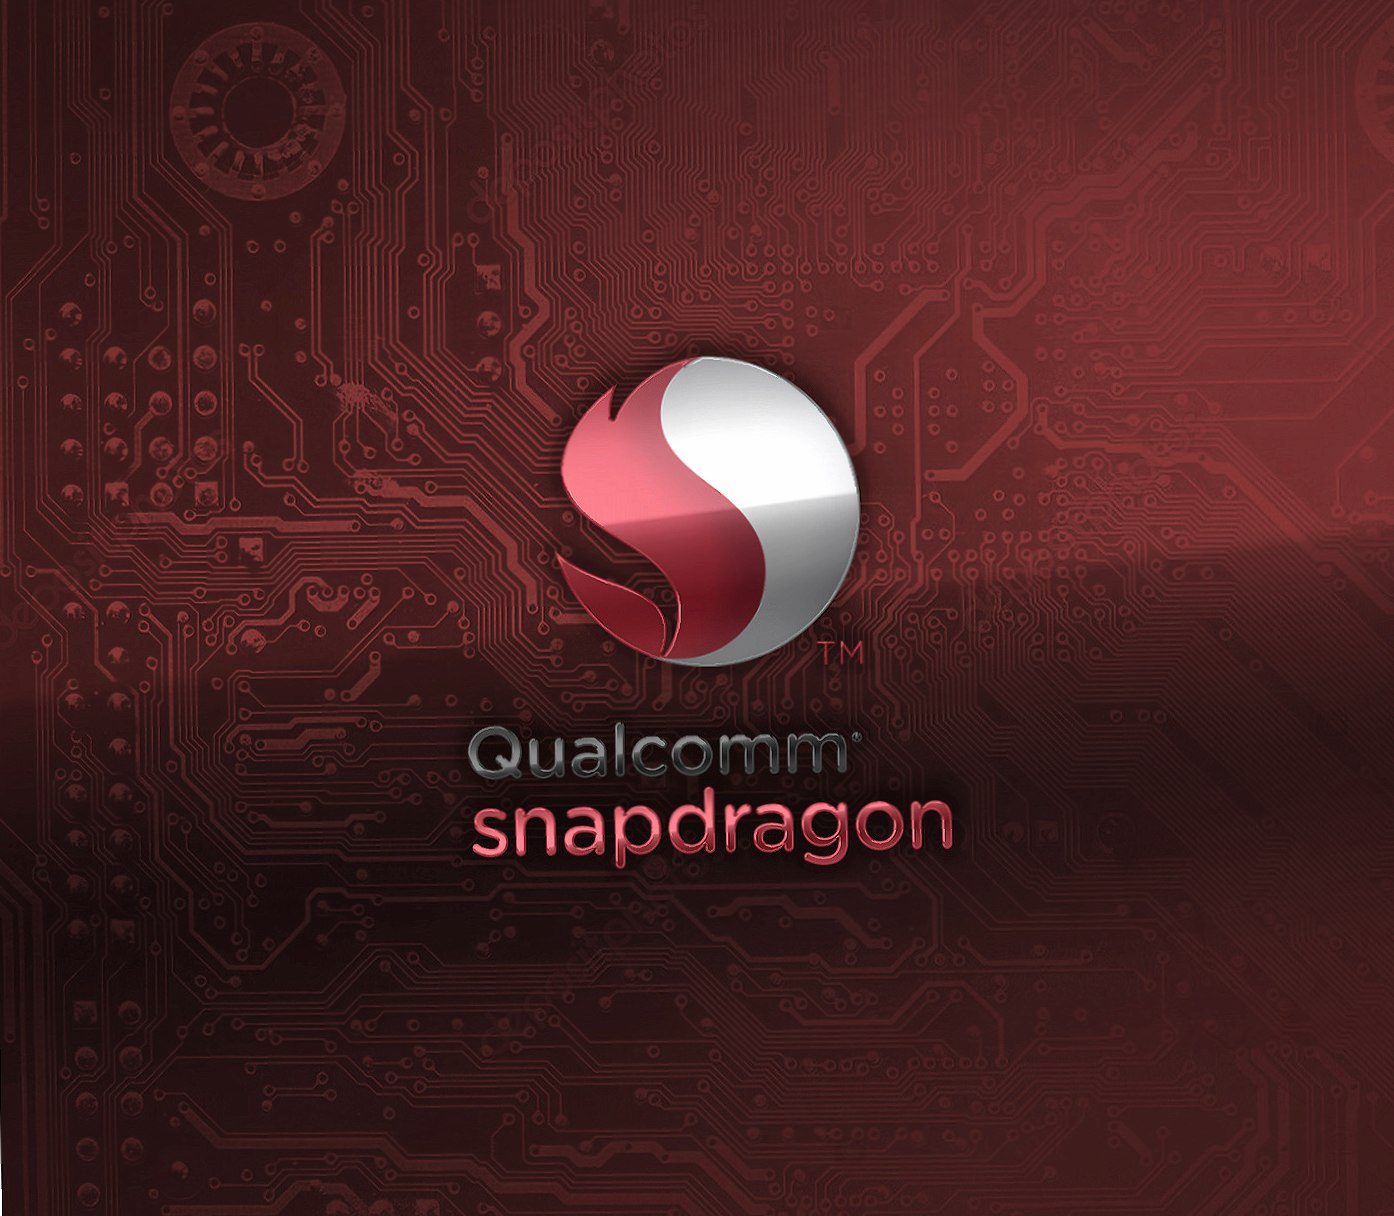 Qualcomm Snapdragon wallpapers HD quality